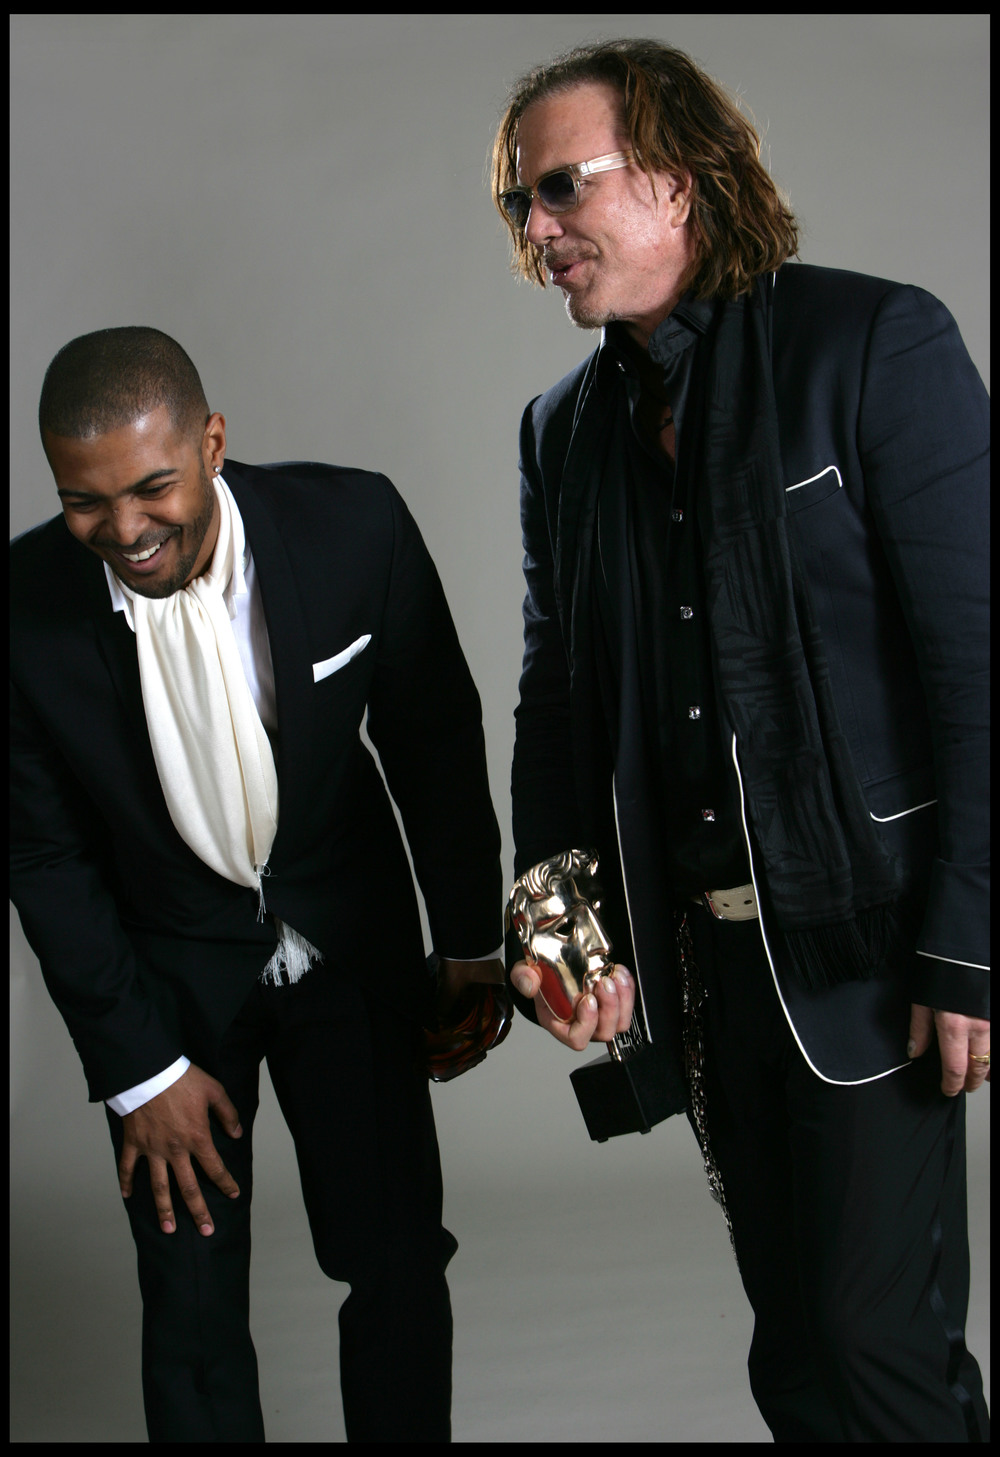 Mickey Rourke & Noel Clarke, actors